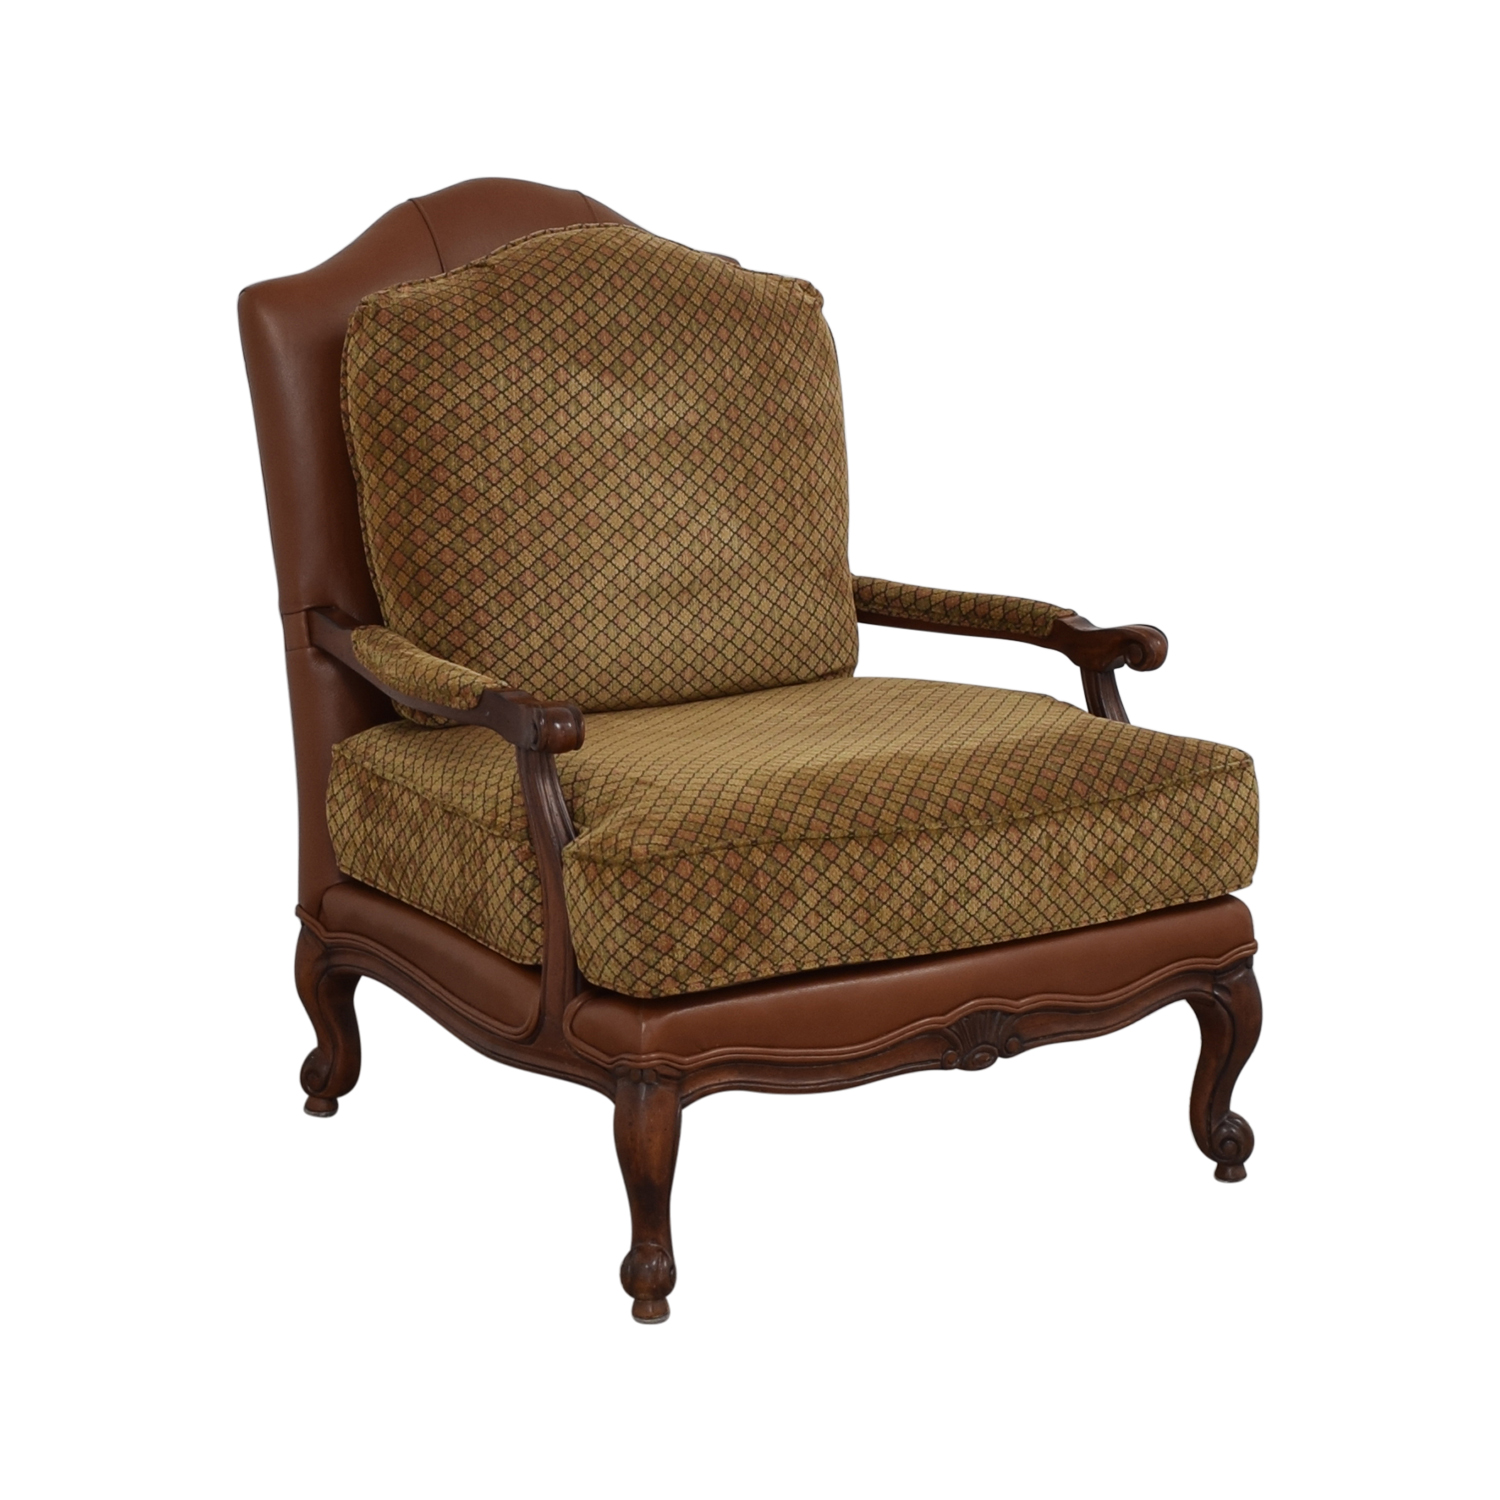 Ethan Allen Upholstered Accent Chair / Accent Chairs